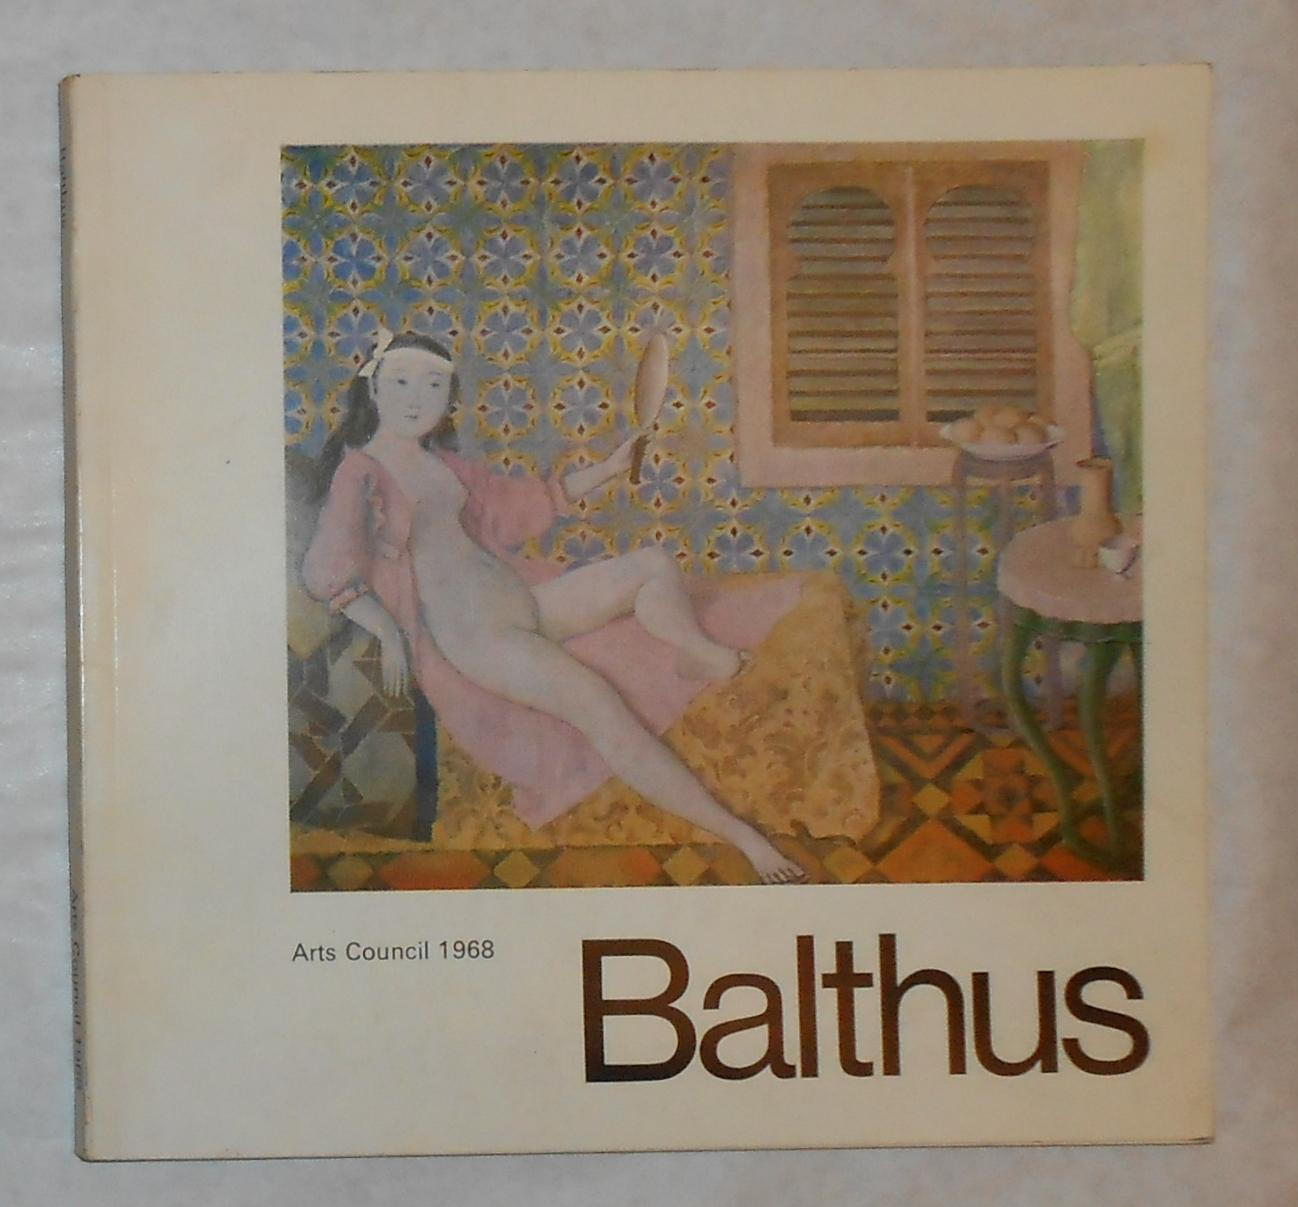 balthus a retrospective exhibition arranged by john russell for the arts council of great britain